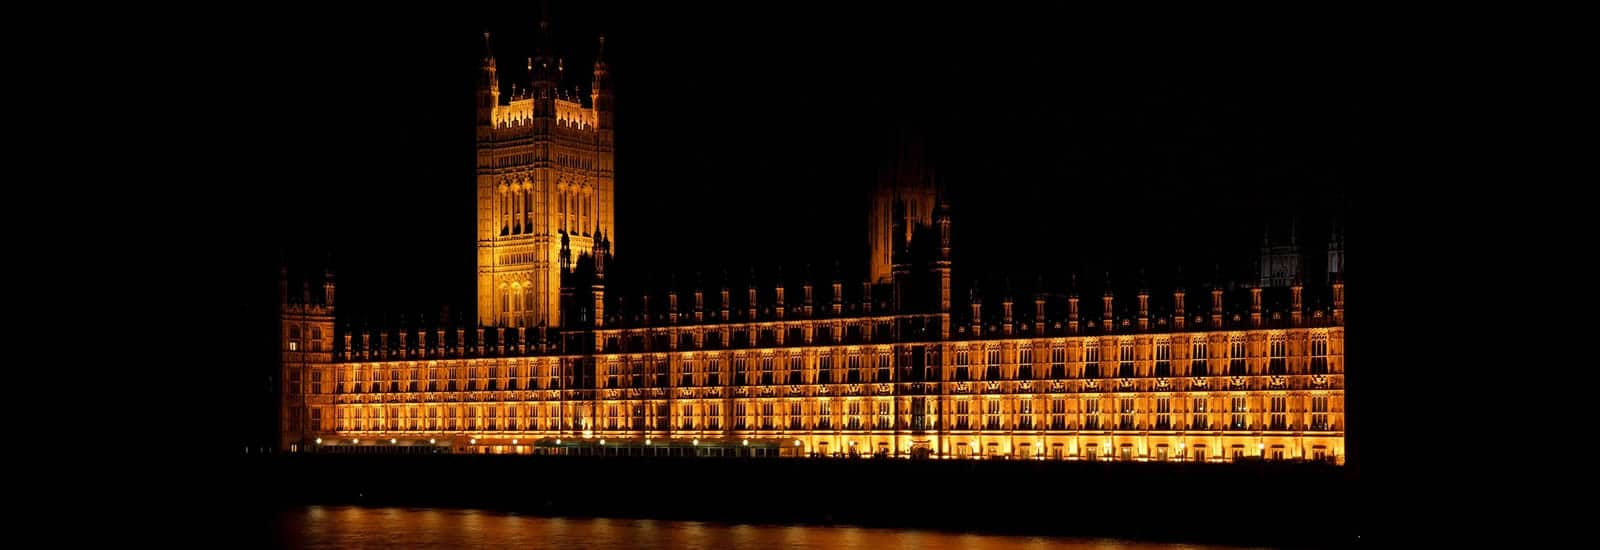 Parliament Building at night - England Travel Guide